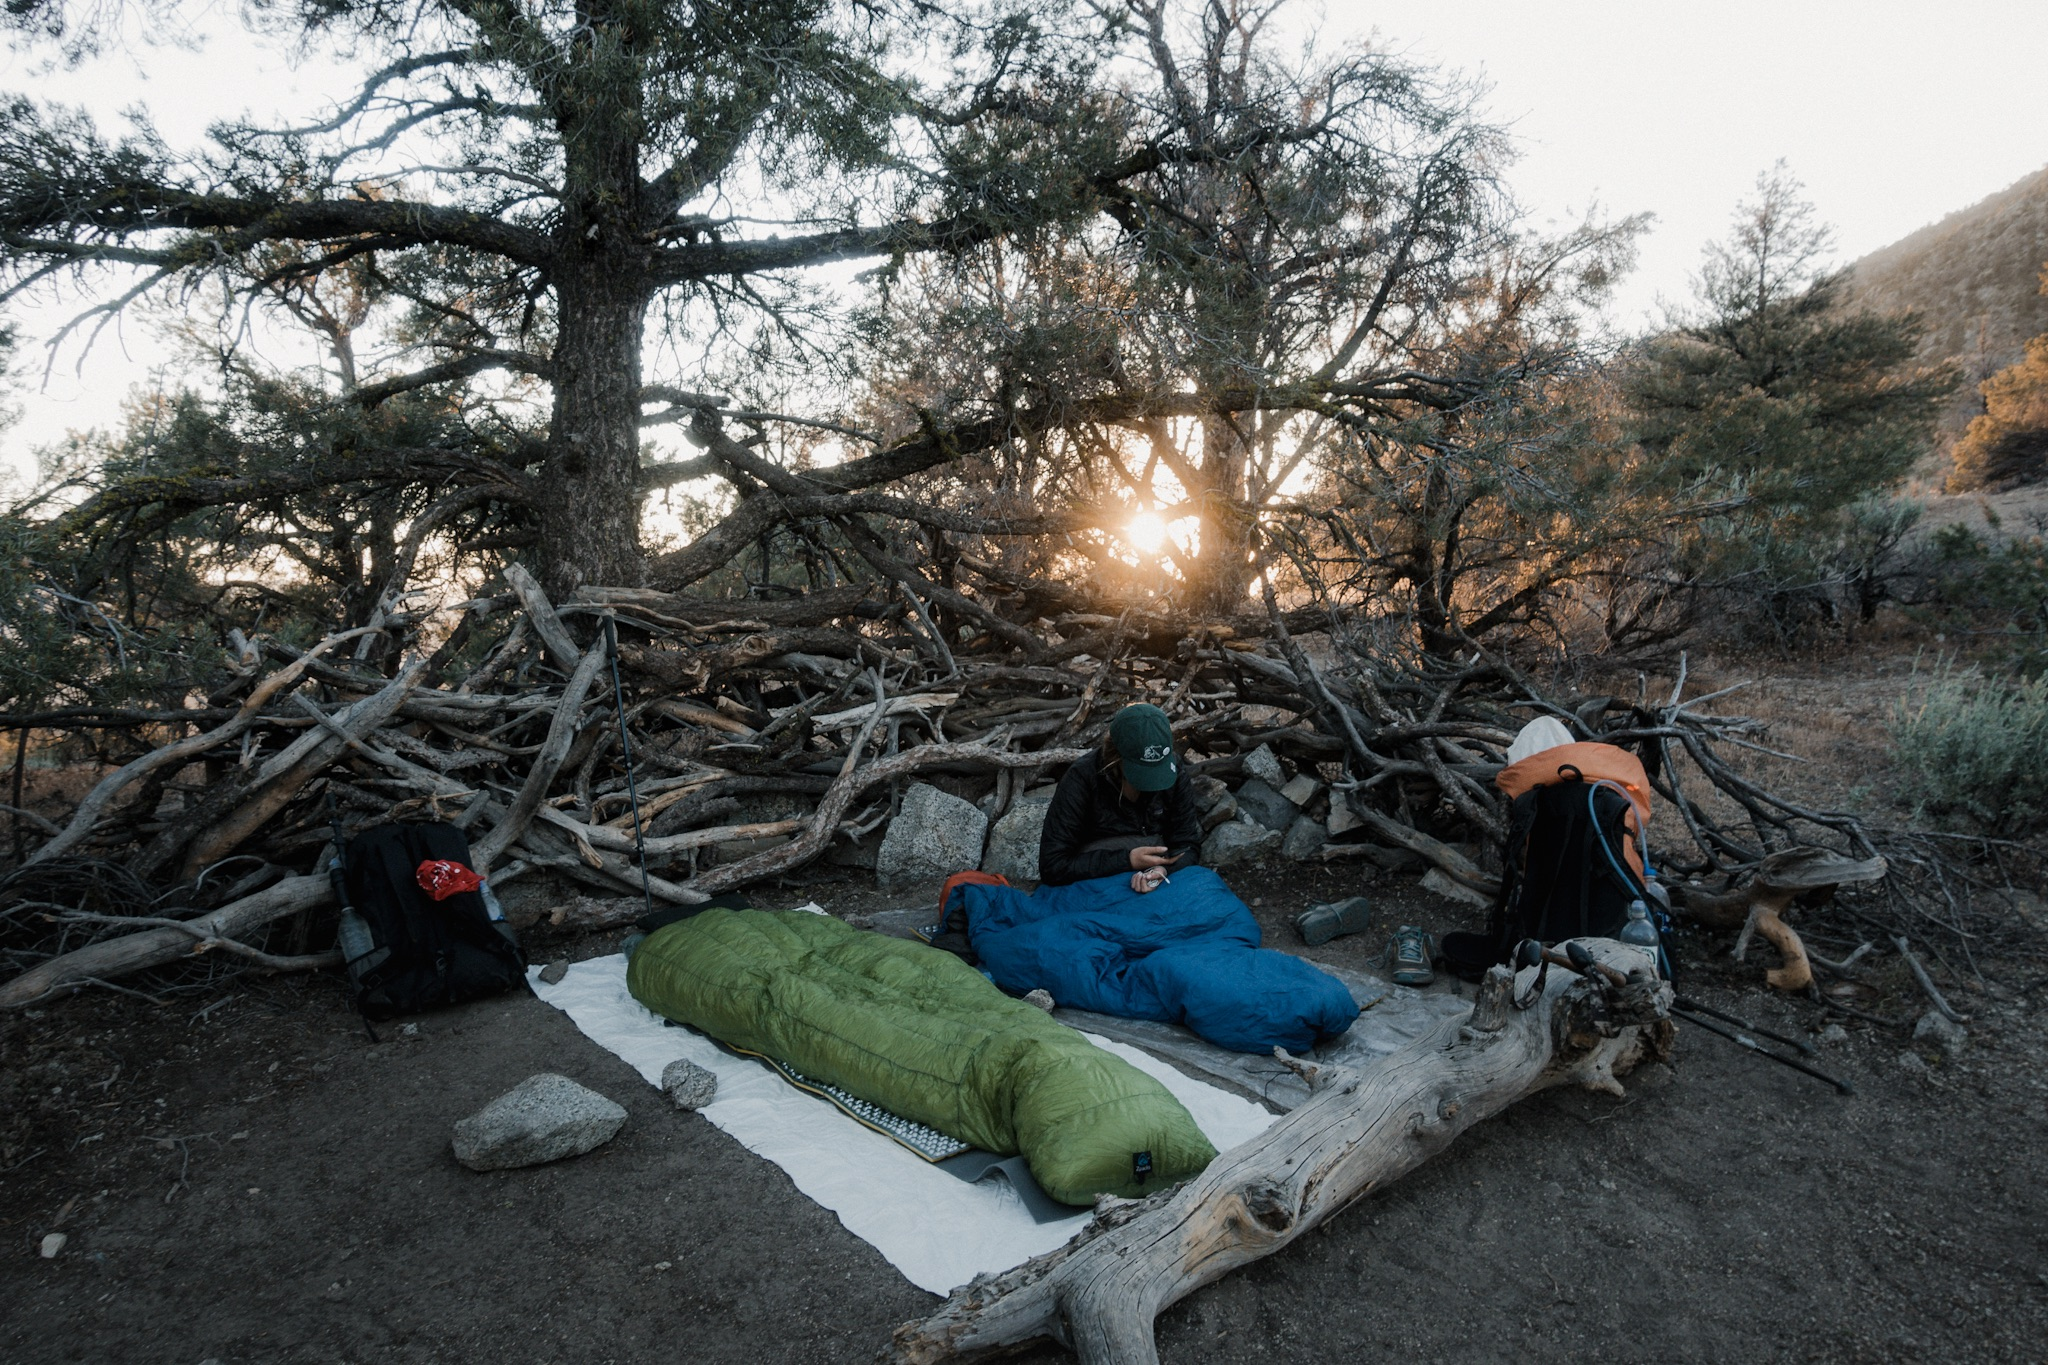 Our camp setup for the night.